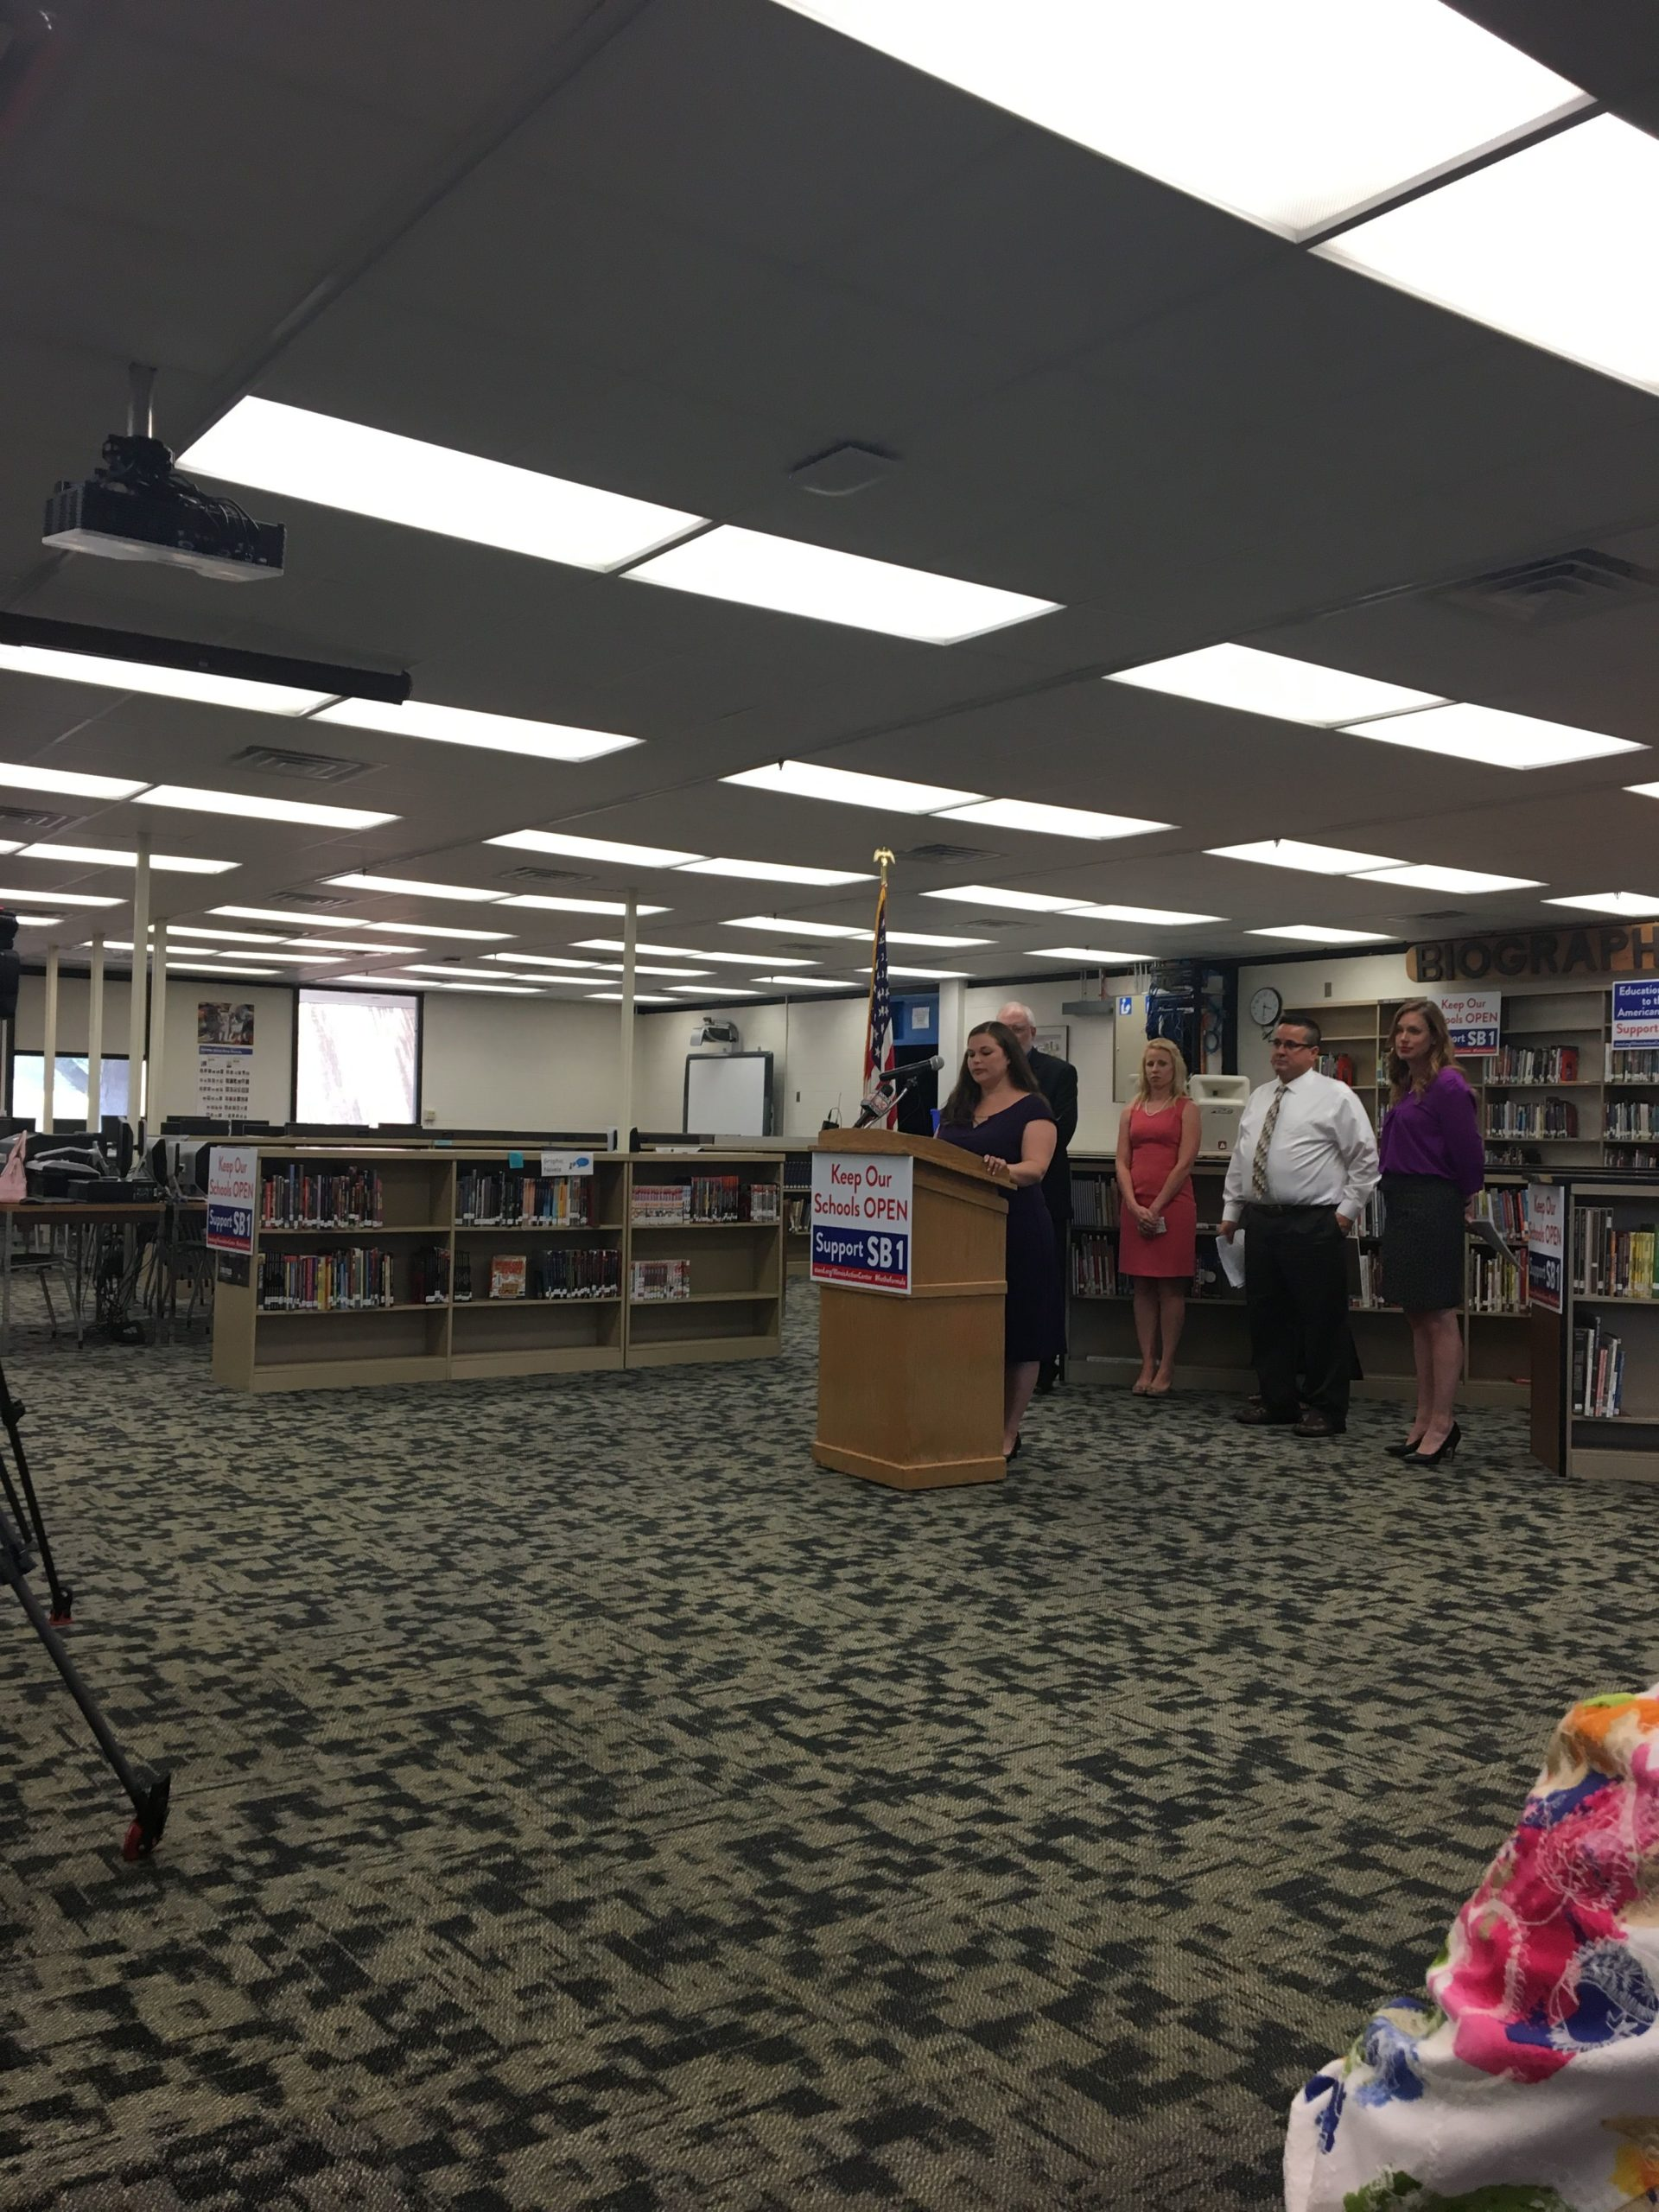 Local School Leaders and Officials want SB1